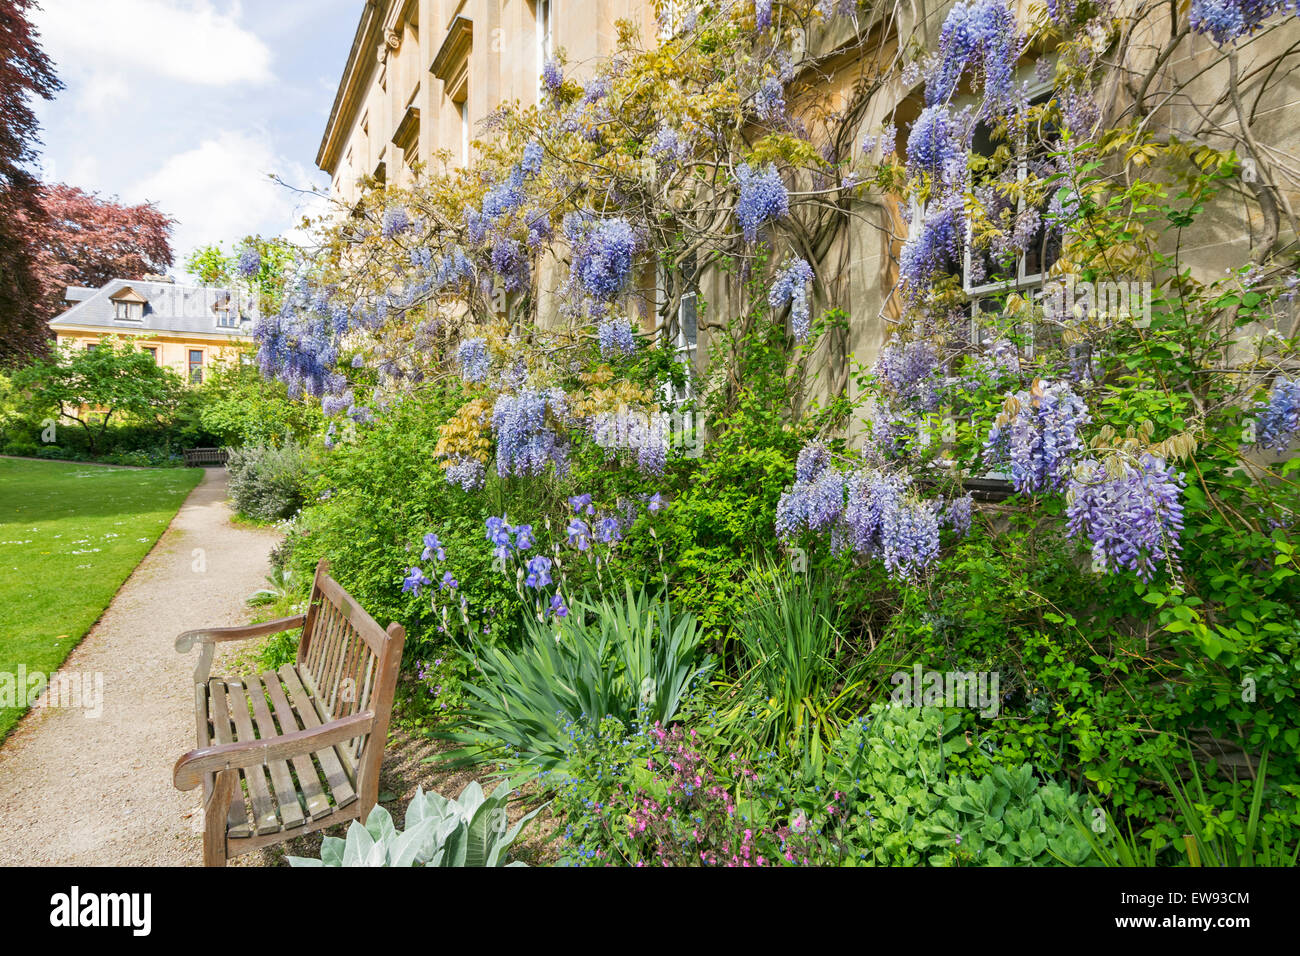 OXFORD CITY WISTERIA COVERED WALL IN SPRINGTIME AT CORPUS CHRISTI COLLEGE - Stock Image